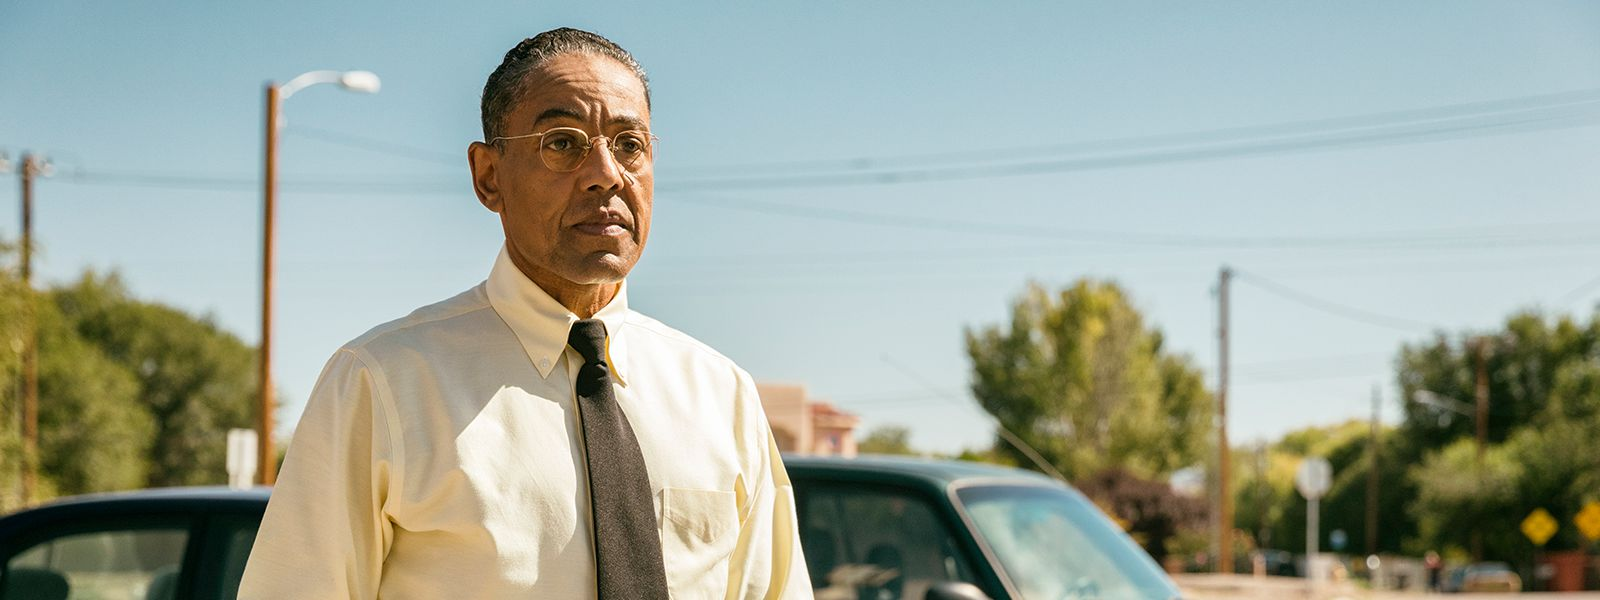 better-call-saul-giancarlo-esposito-gus-fring-302-post-800×600